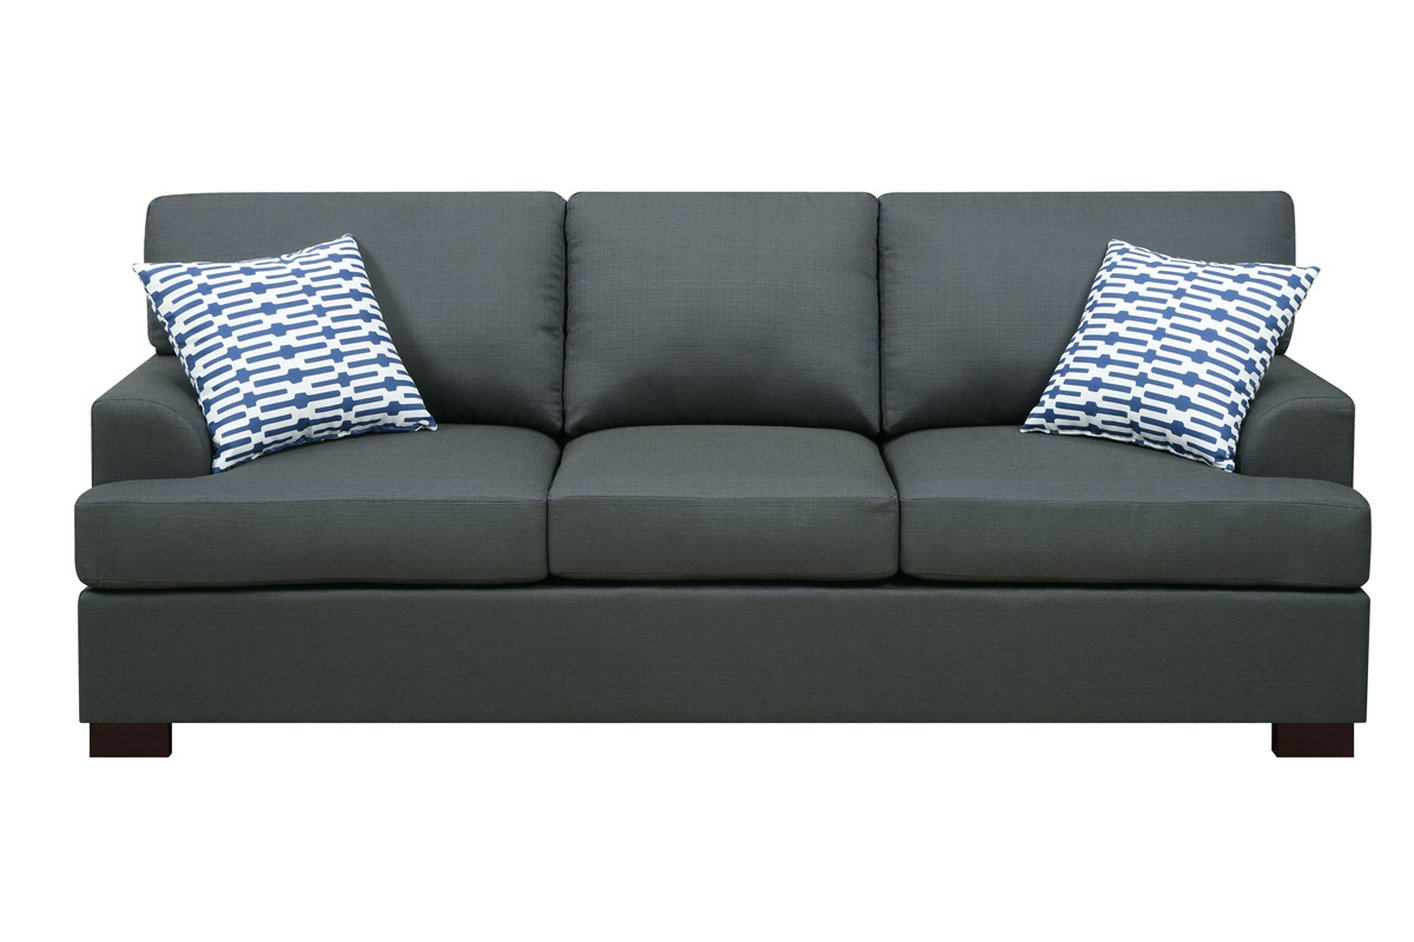 Camille black fabric sofa steal a sofa furniture outlet for Black fabric couches